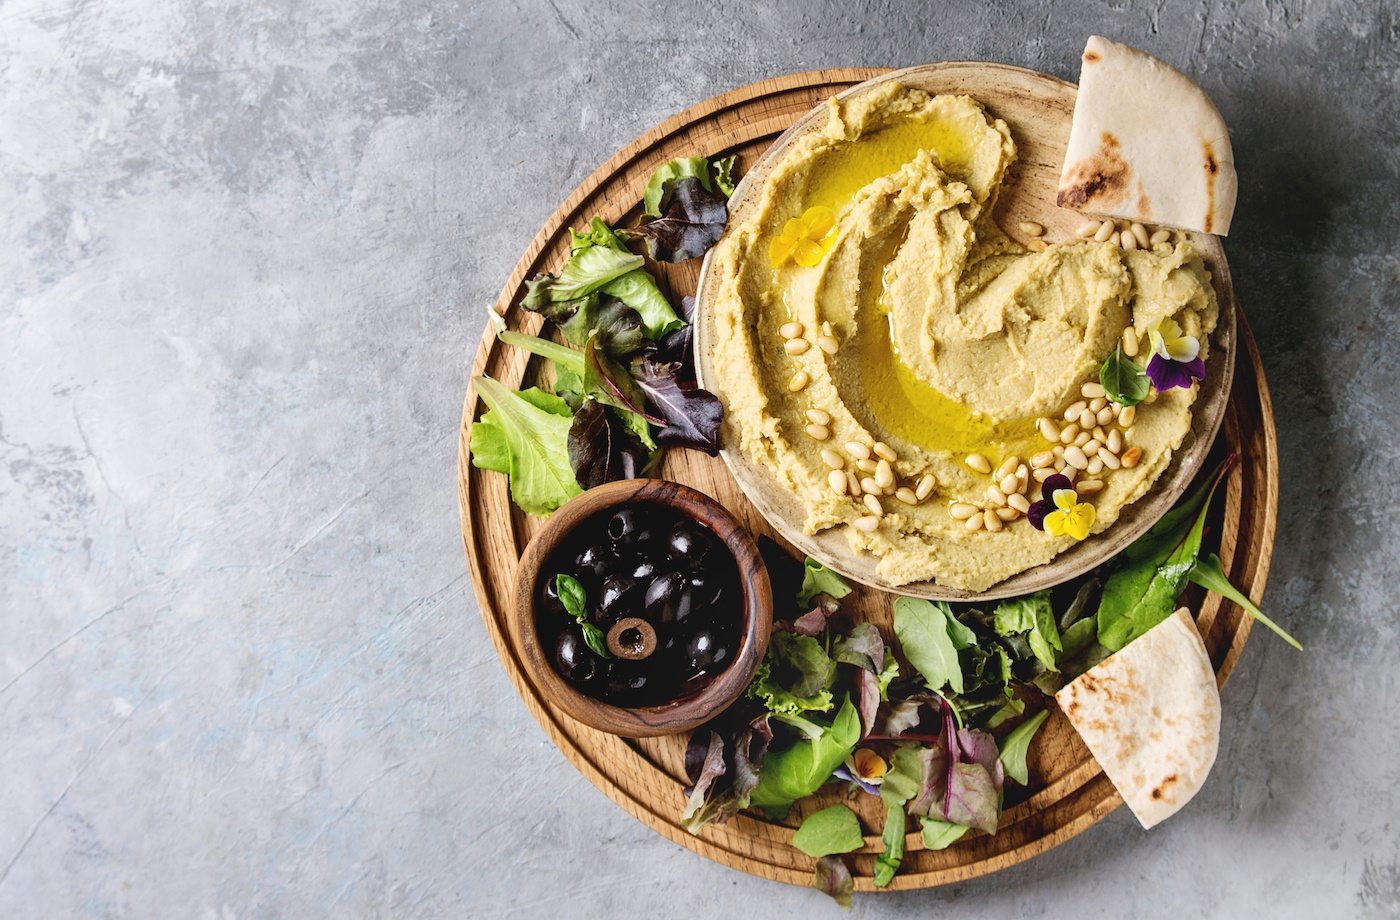 Thumbnail for Hummus Is More Than a Crowd-Pleasing Party Dip—It's a Nutritional Goldmine